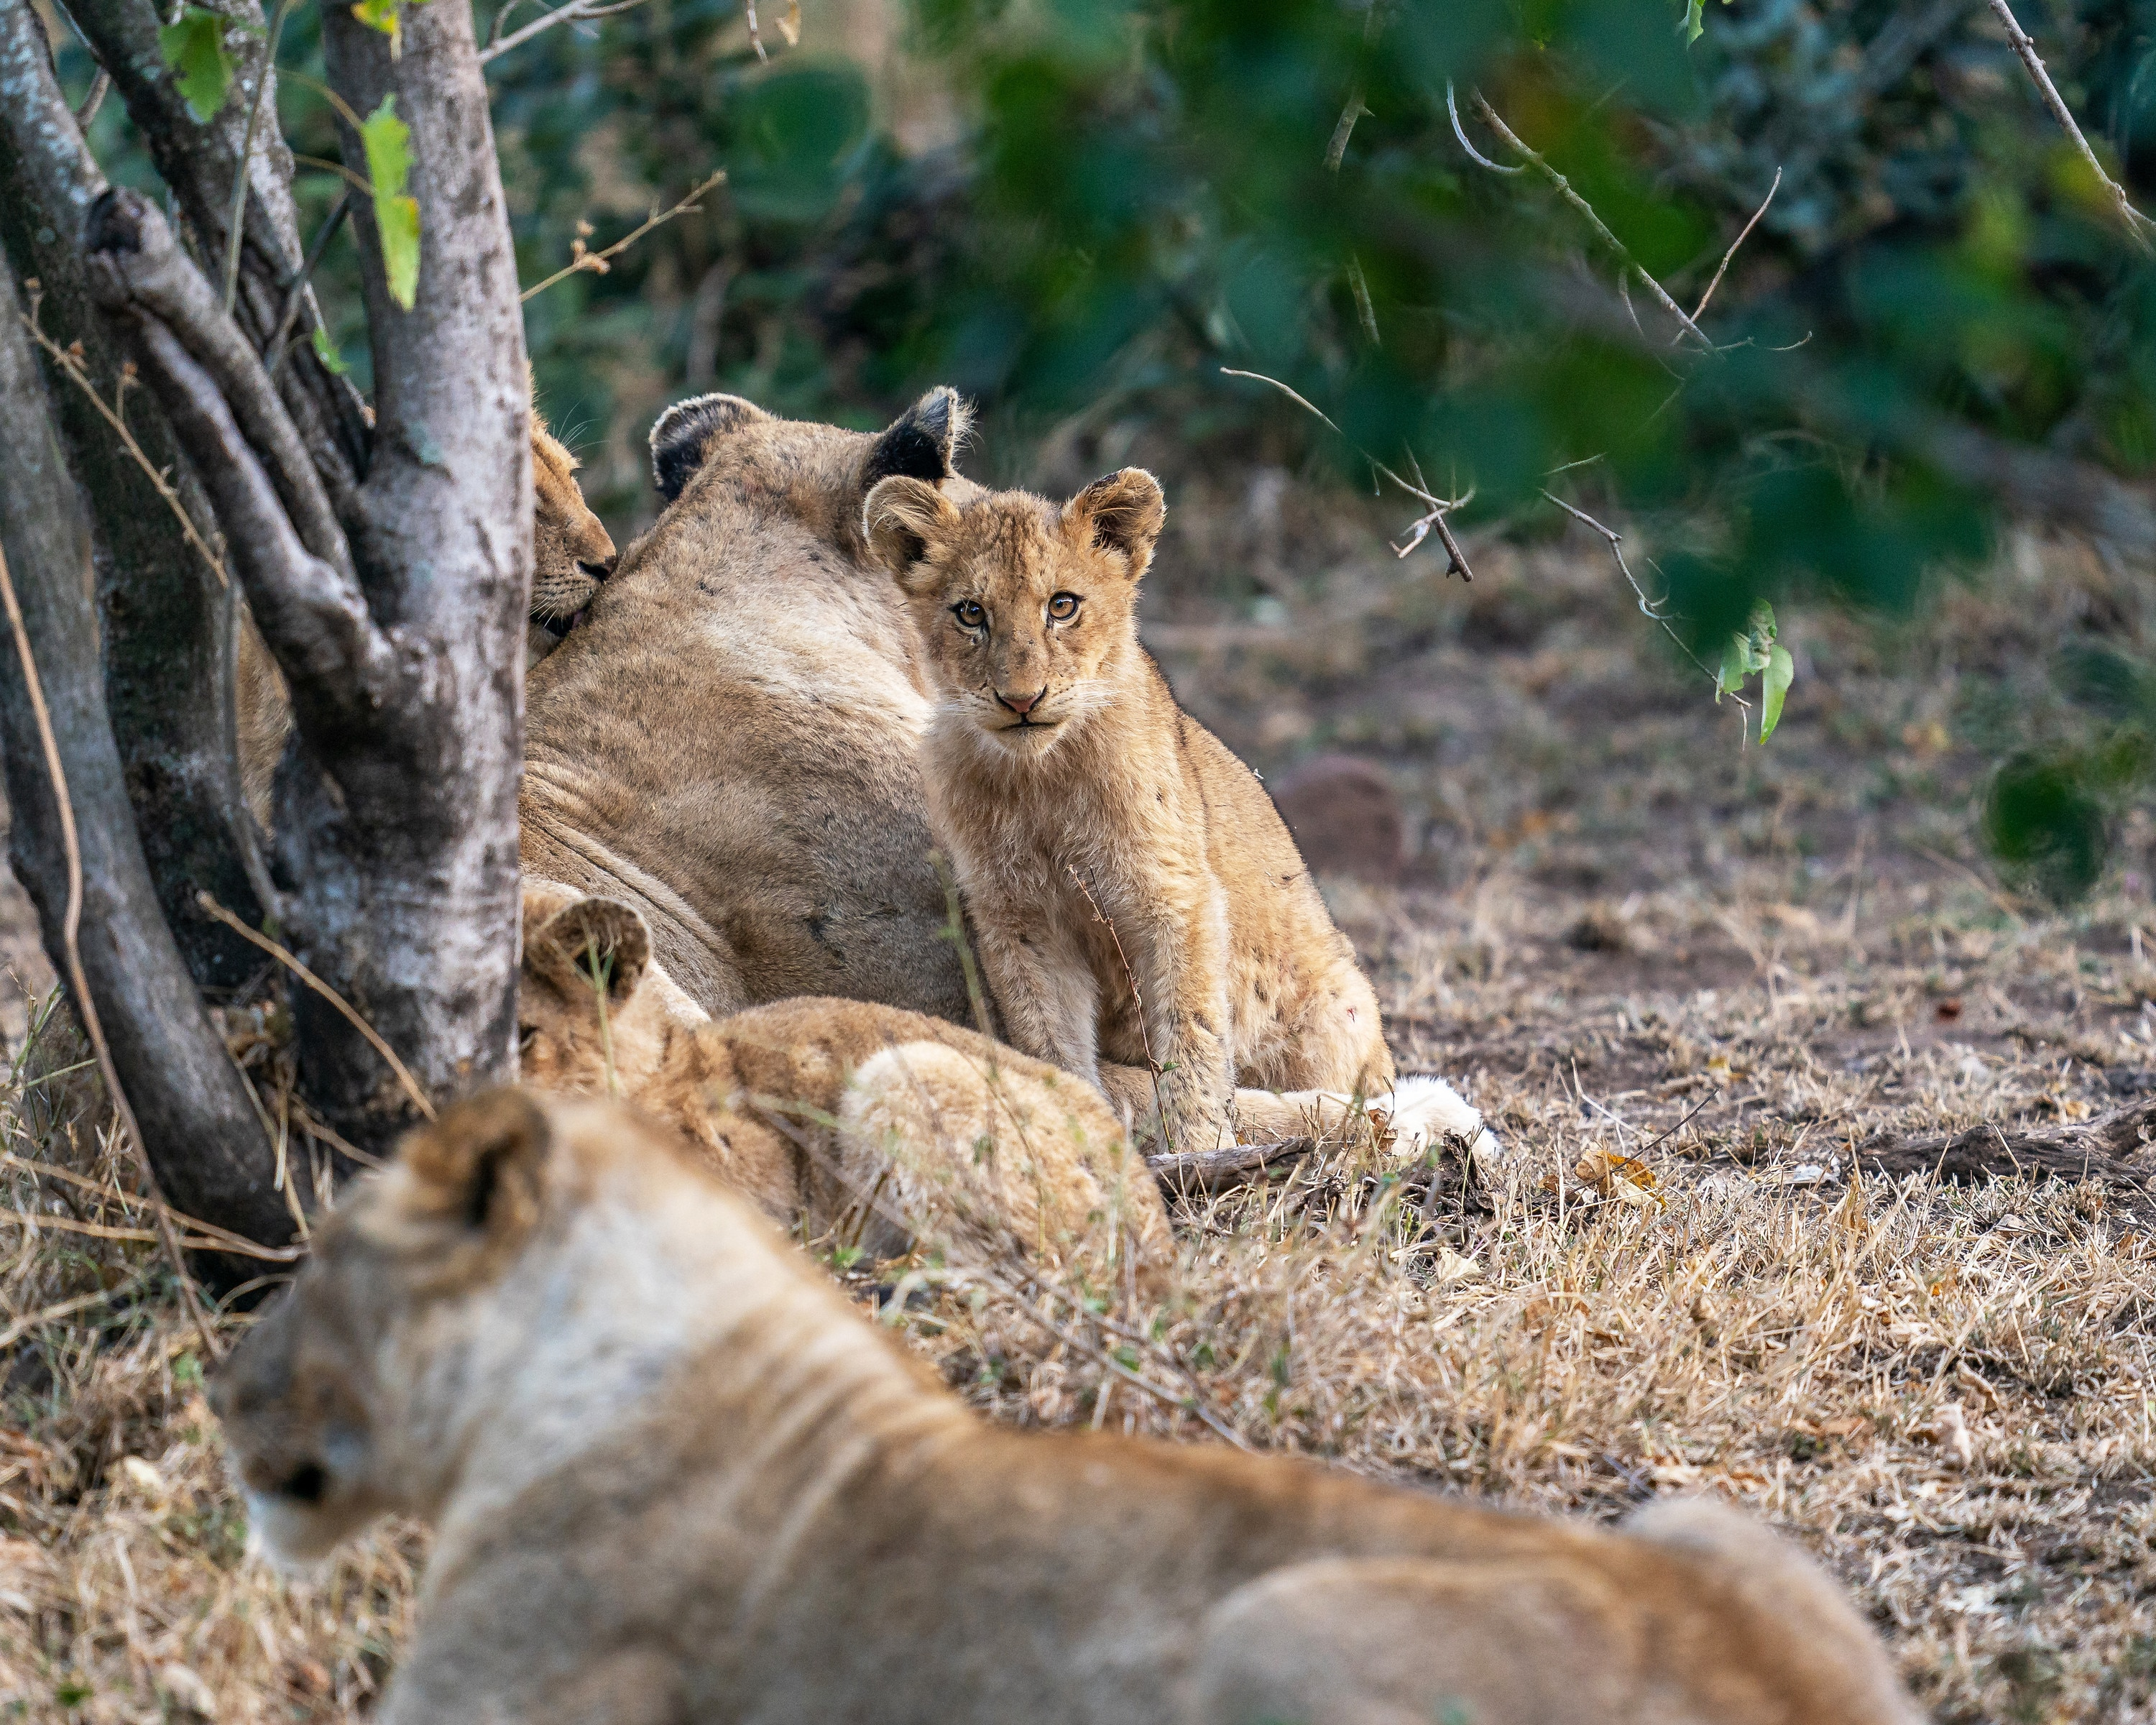 Cub Issa surrounded by her family. (National Geographic for Disney+/Russell MacLaughlin)